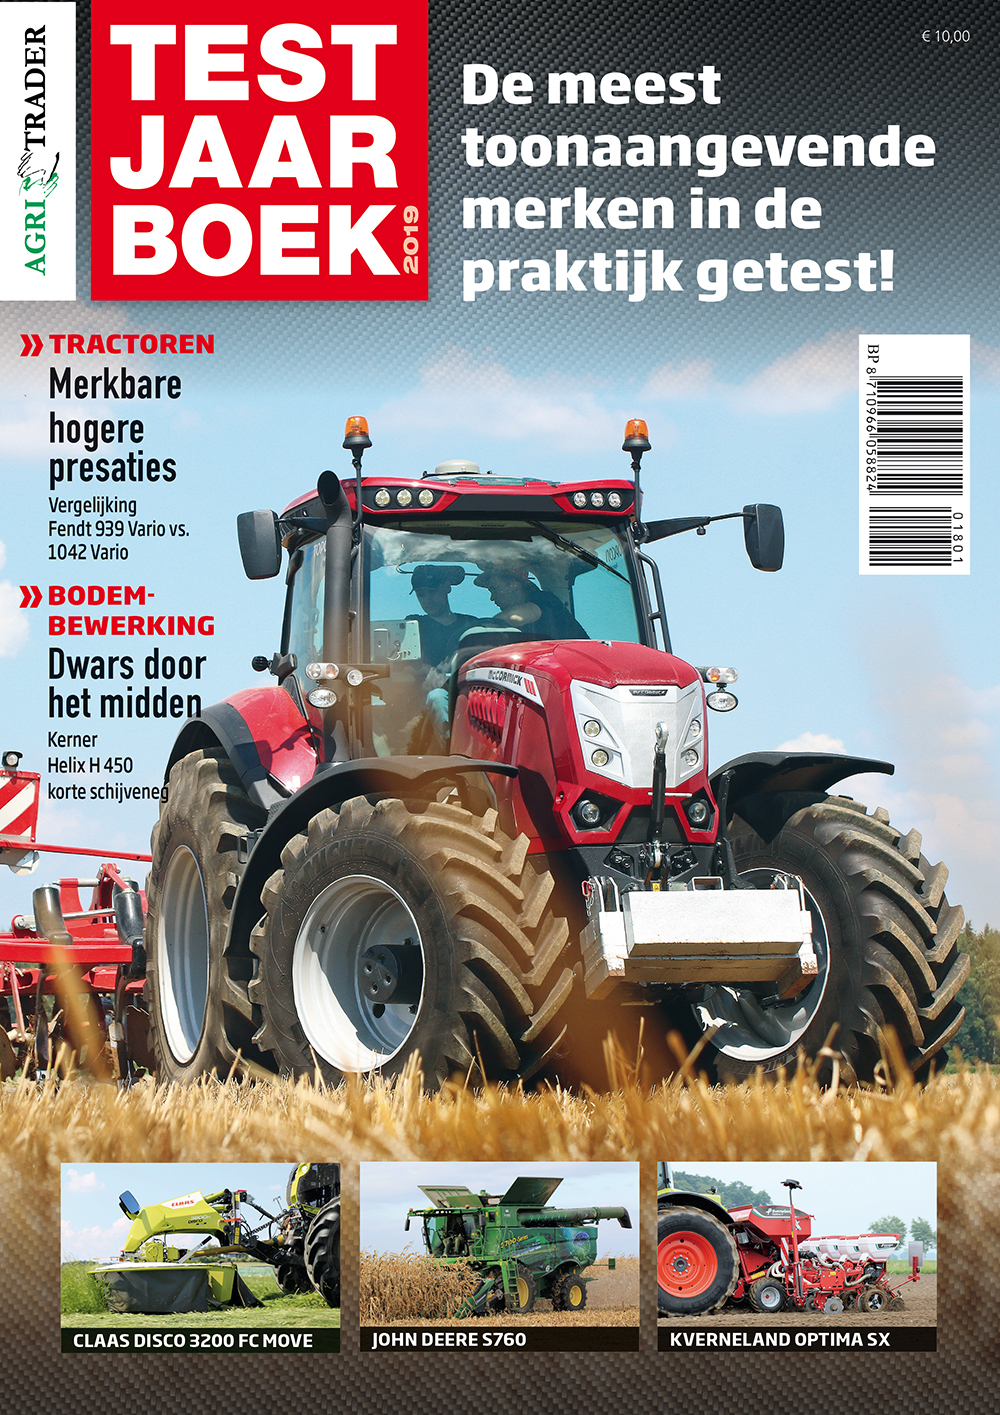 Test Jaarboek 2019 cover - Agri Trader